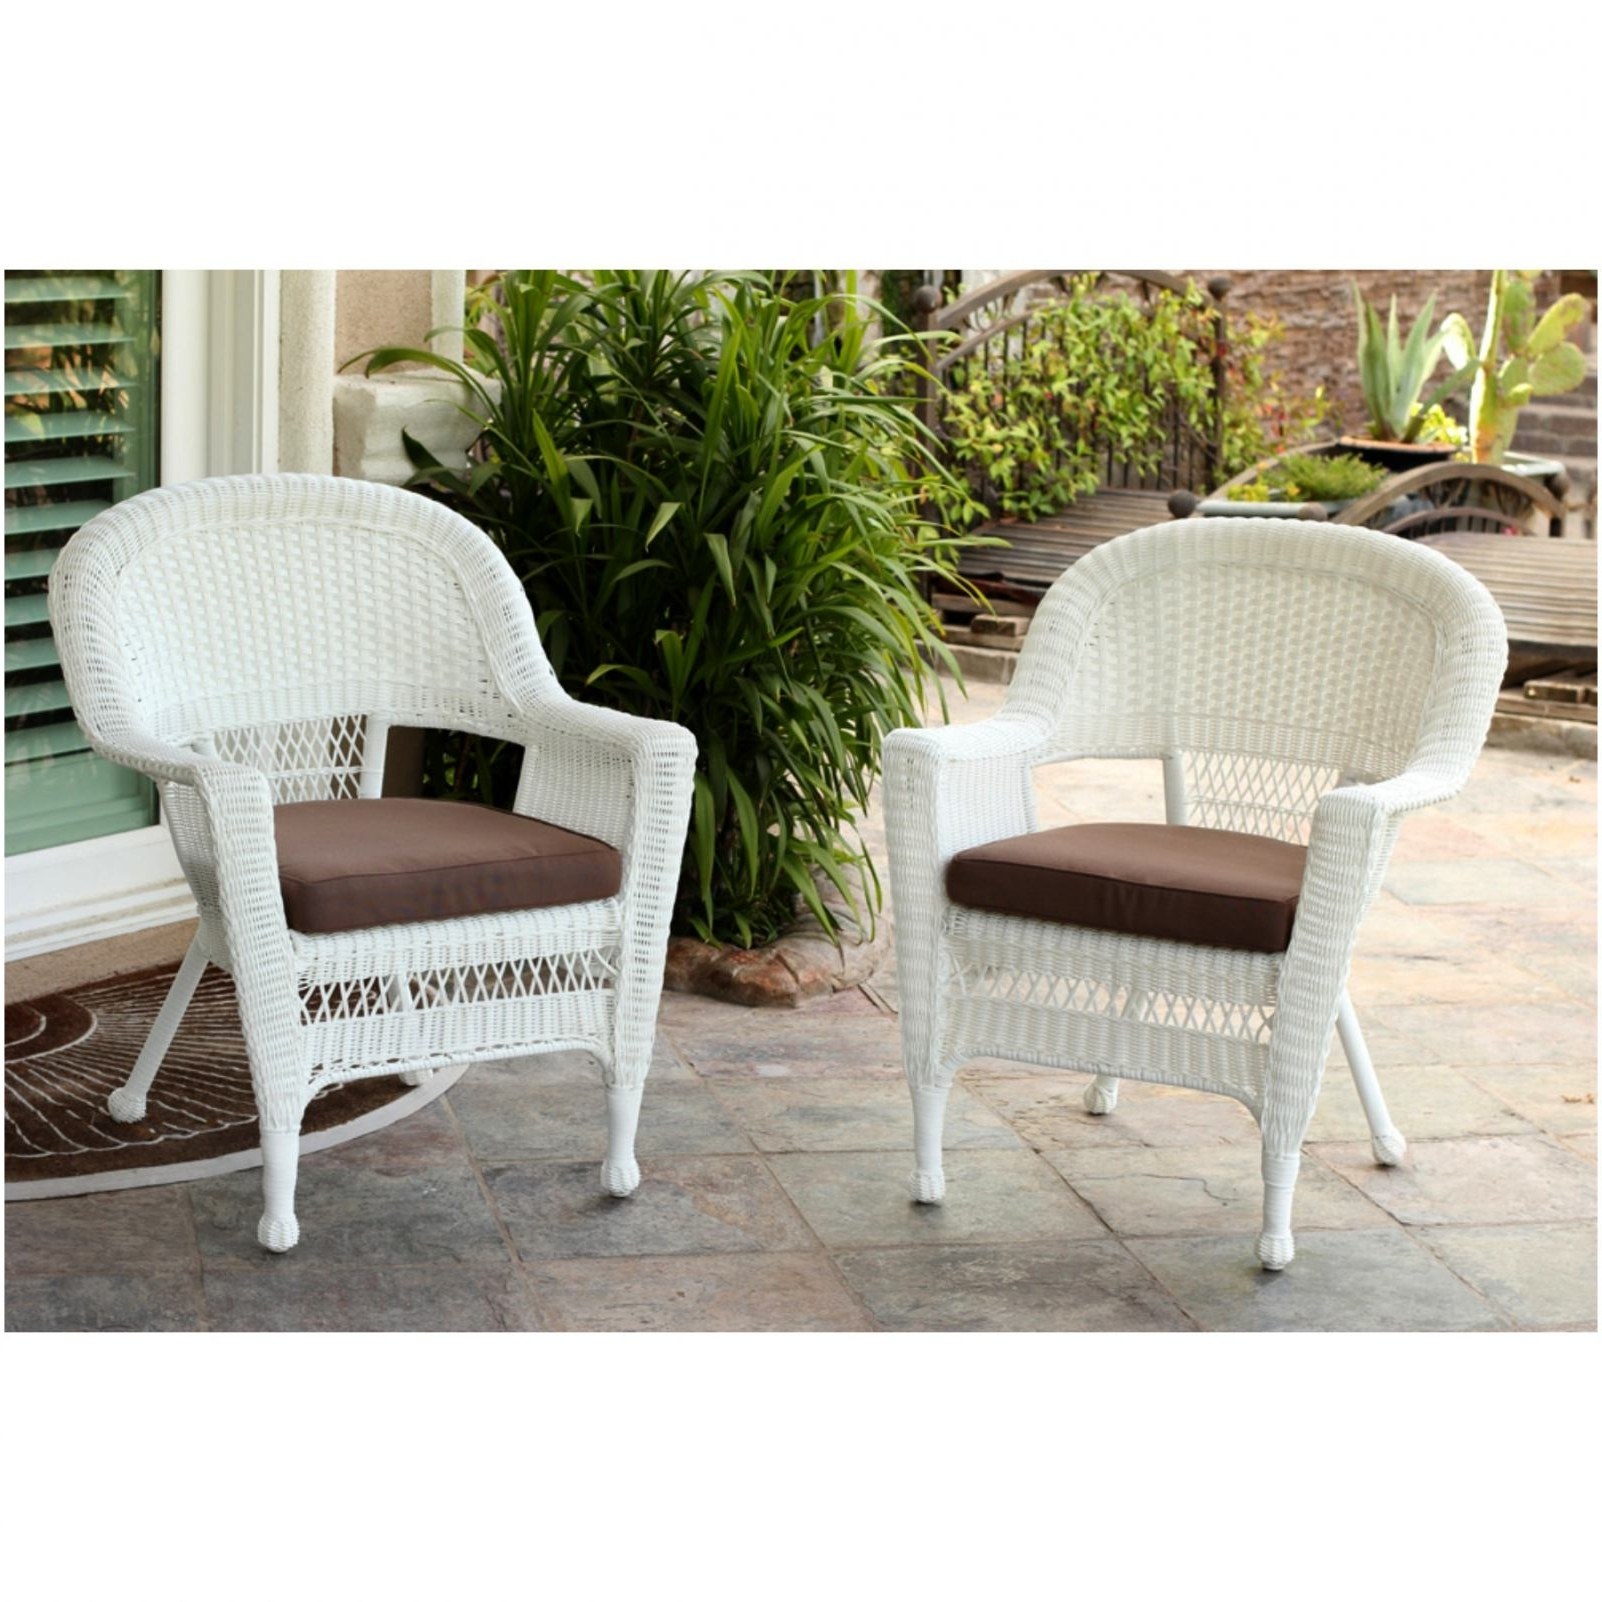 Best And Newest Secrets Kohls Outdoor Furniture Patio Savrsenizgled Com Intended For Kohl's Patio Conversation Sets (View 1 of 15)